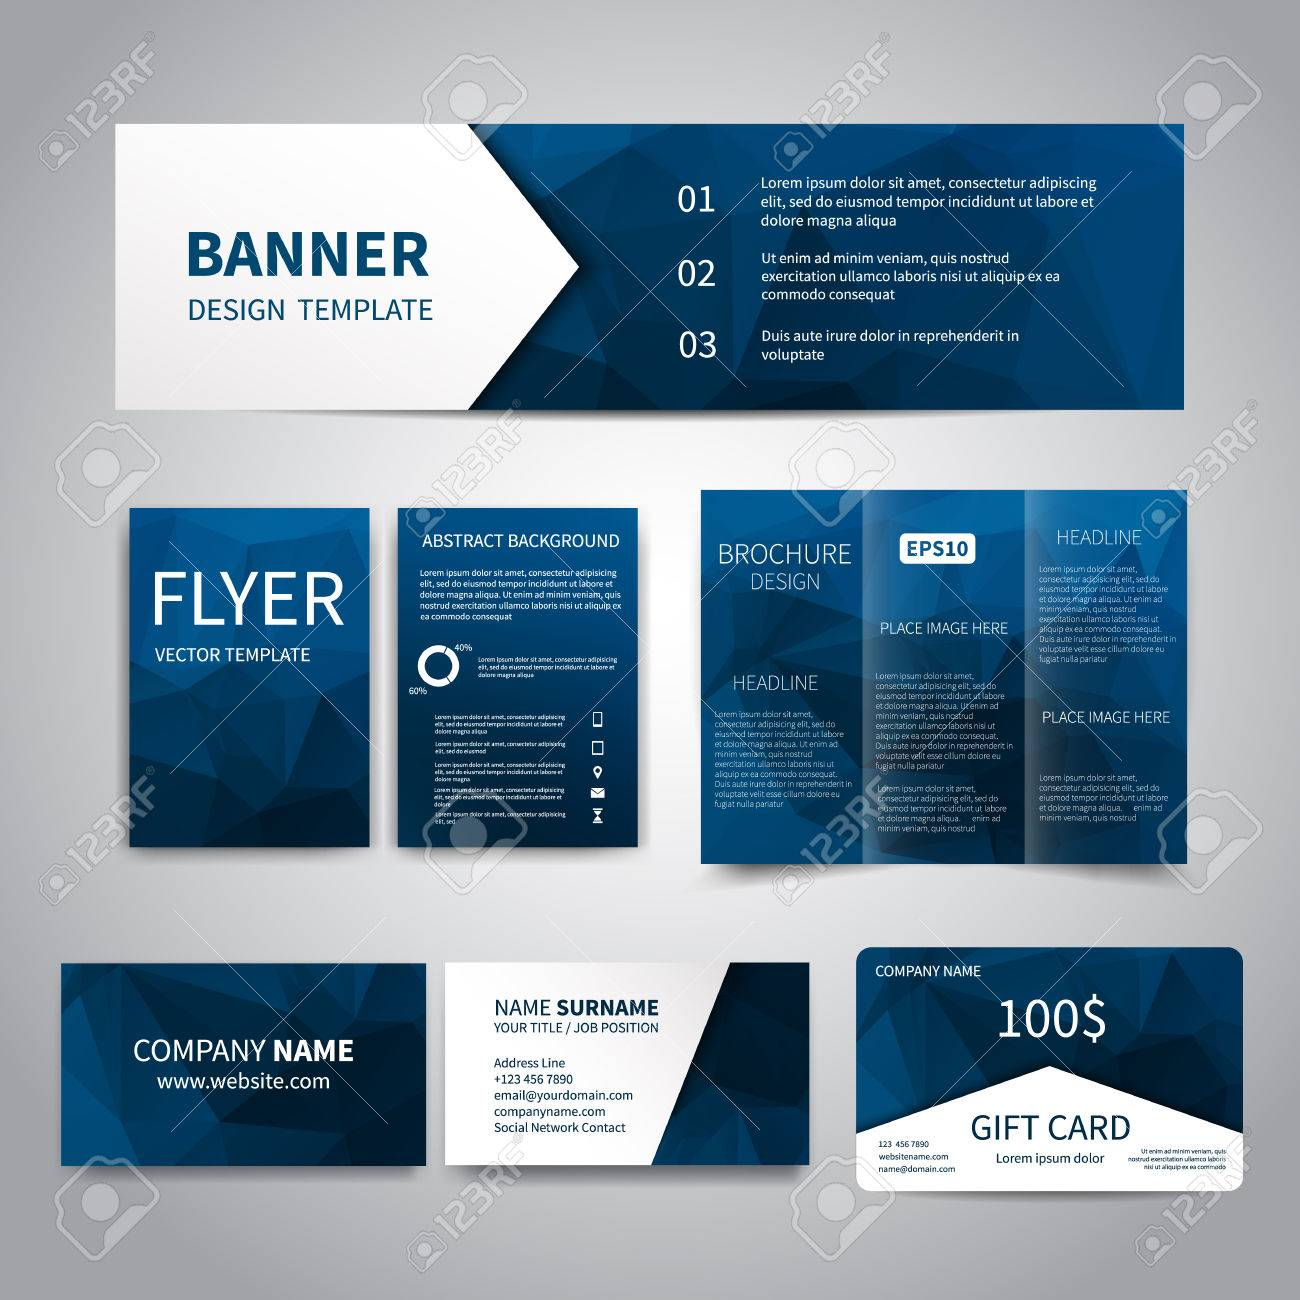 Banner Flyers Brochure Business Cards Gift Card Design - Business cards examples templates